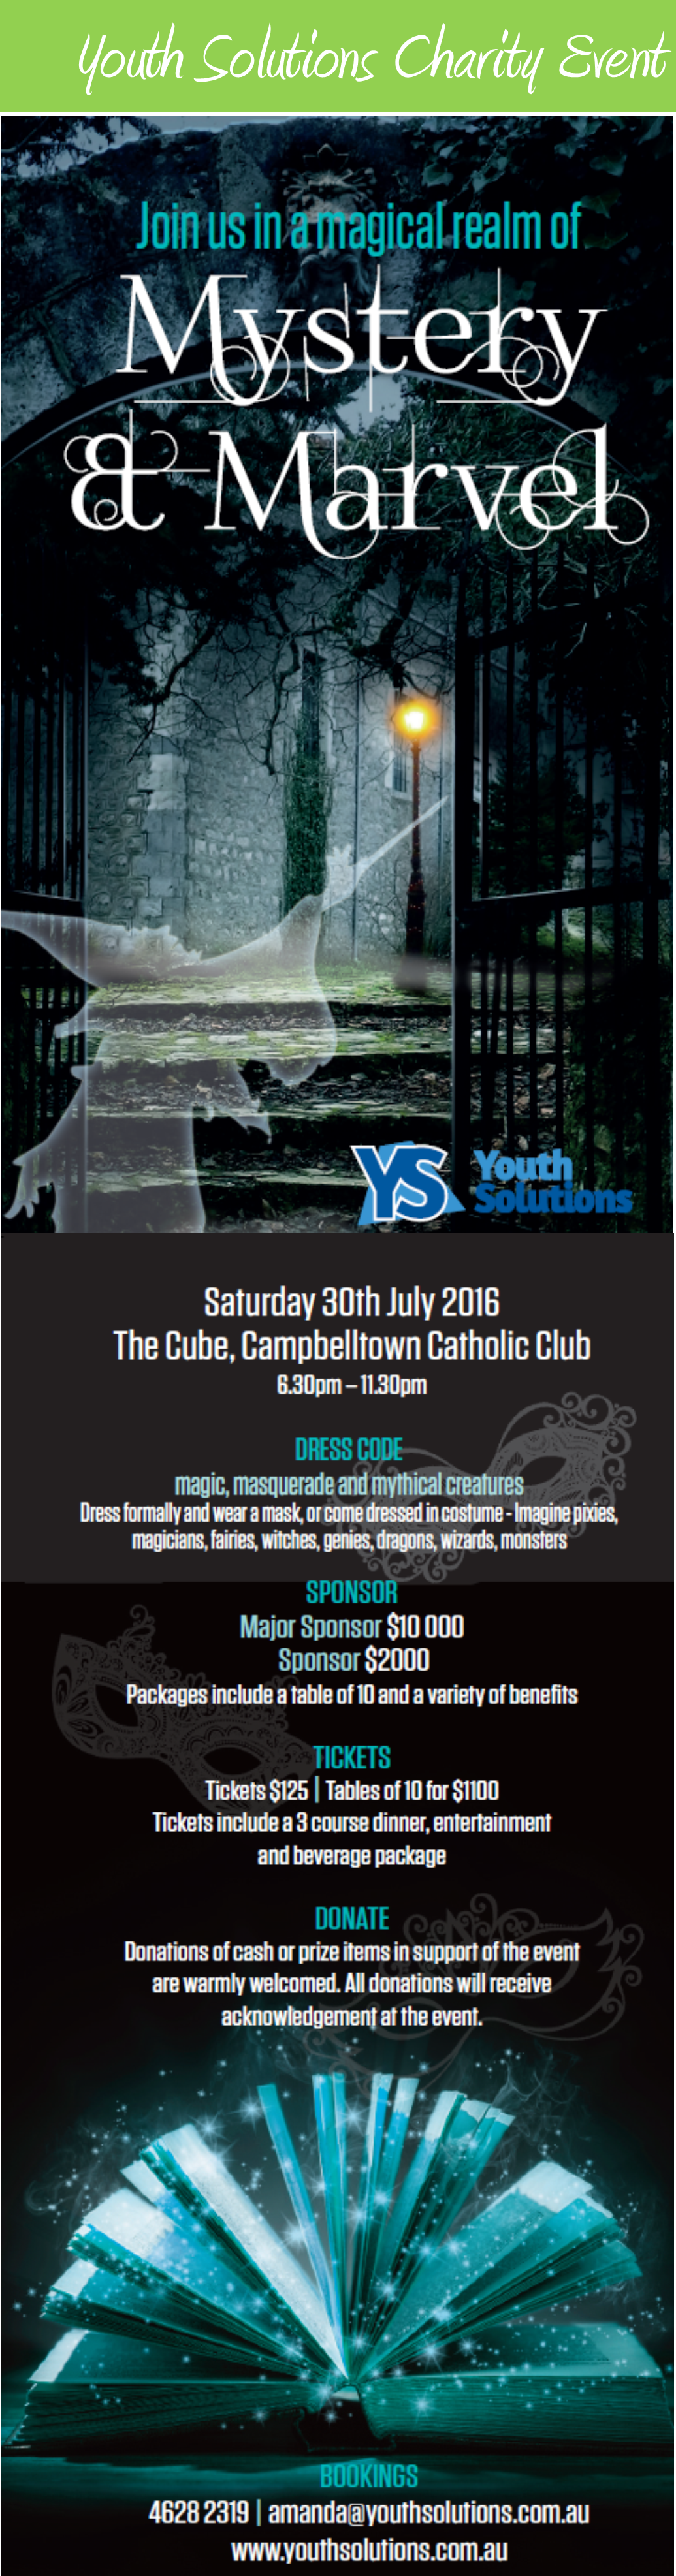 Join us in a magical realm of Mystery and Marvel for the YS Charity Event!